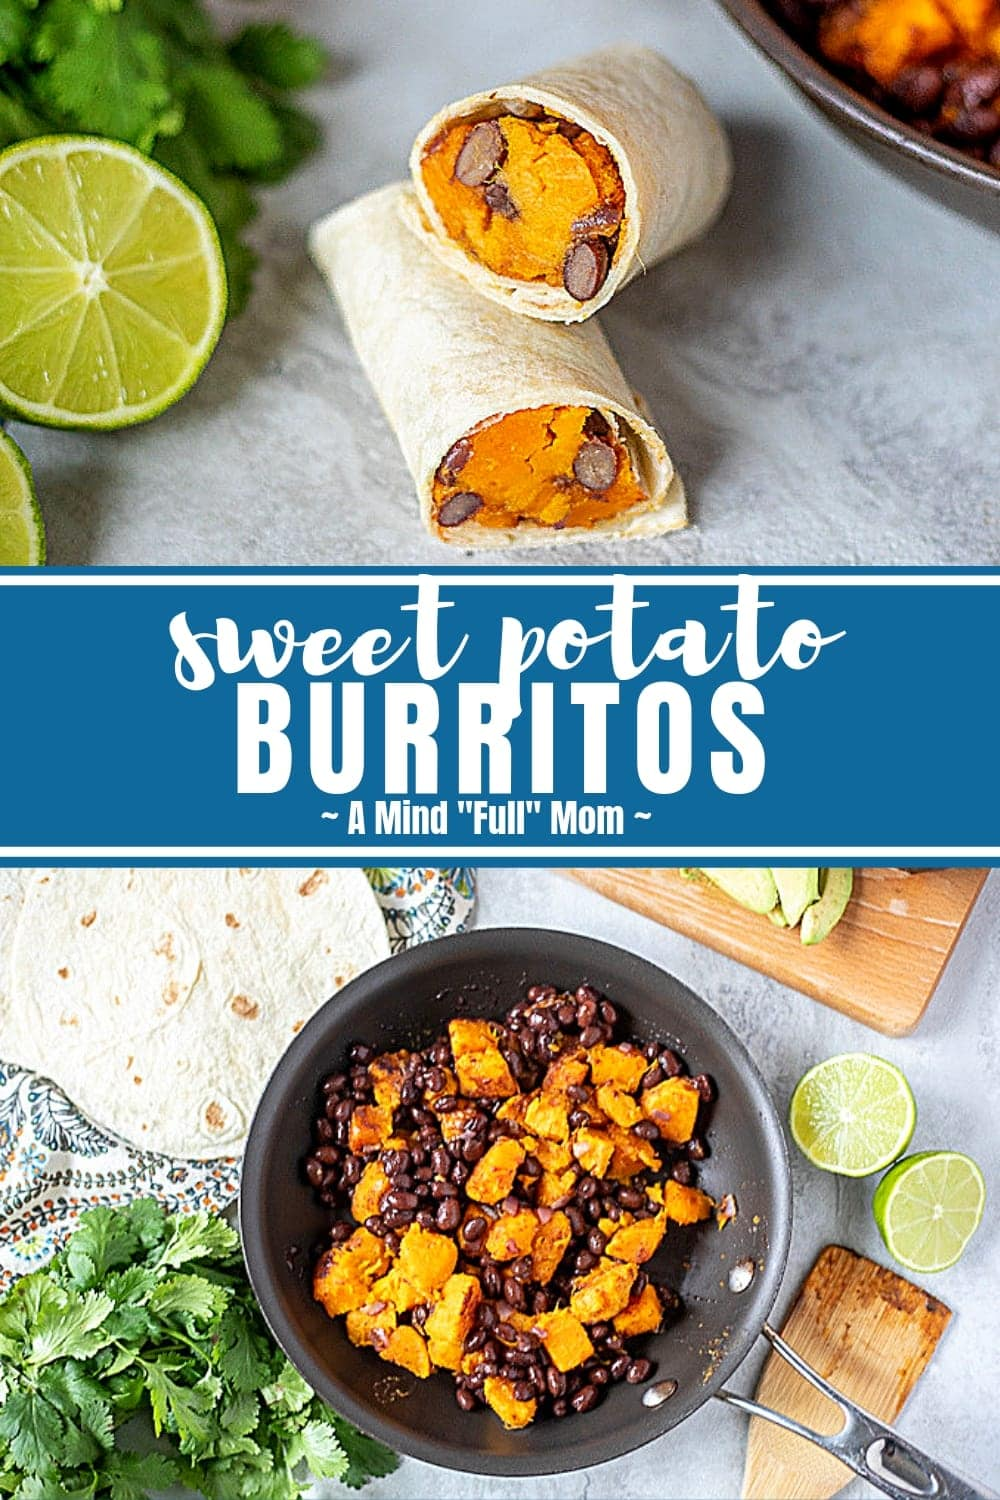 These hearty sweet potato burritos with black beans make a perfect vegetarian burrito. Filled with sweet potatoes, black beans and southwestern spices, these easy burritos are hearty, filling, and healthy! #vegan #burritos